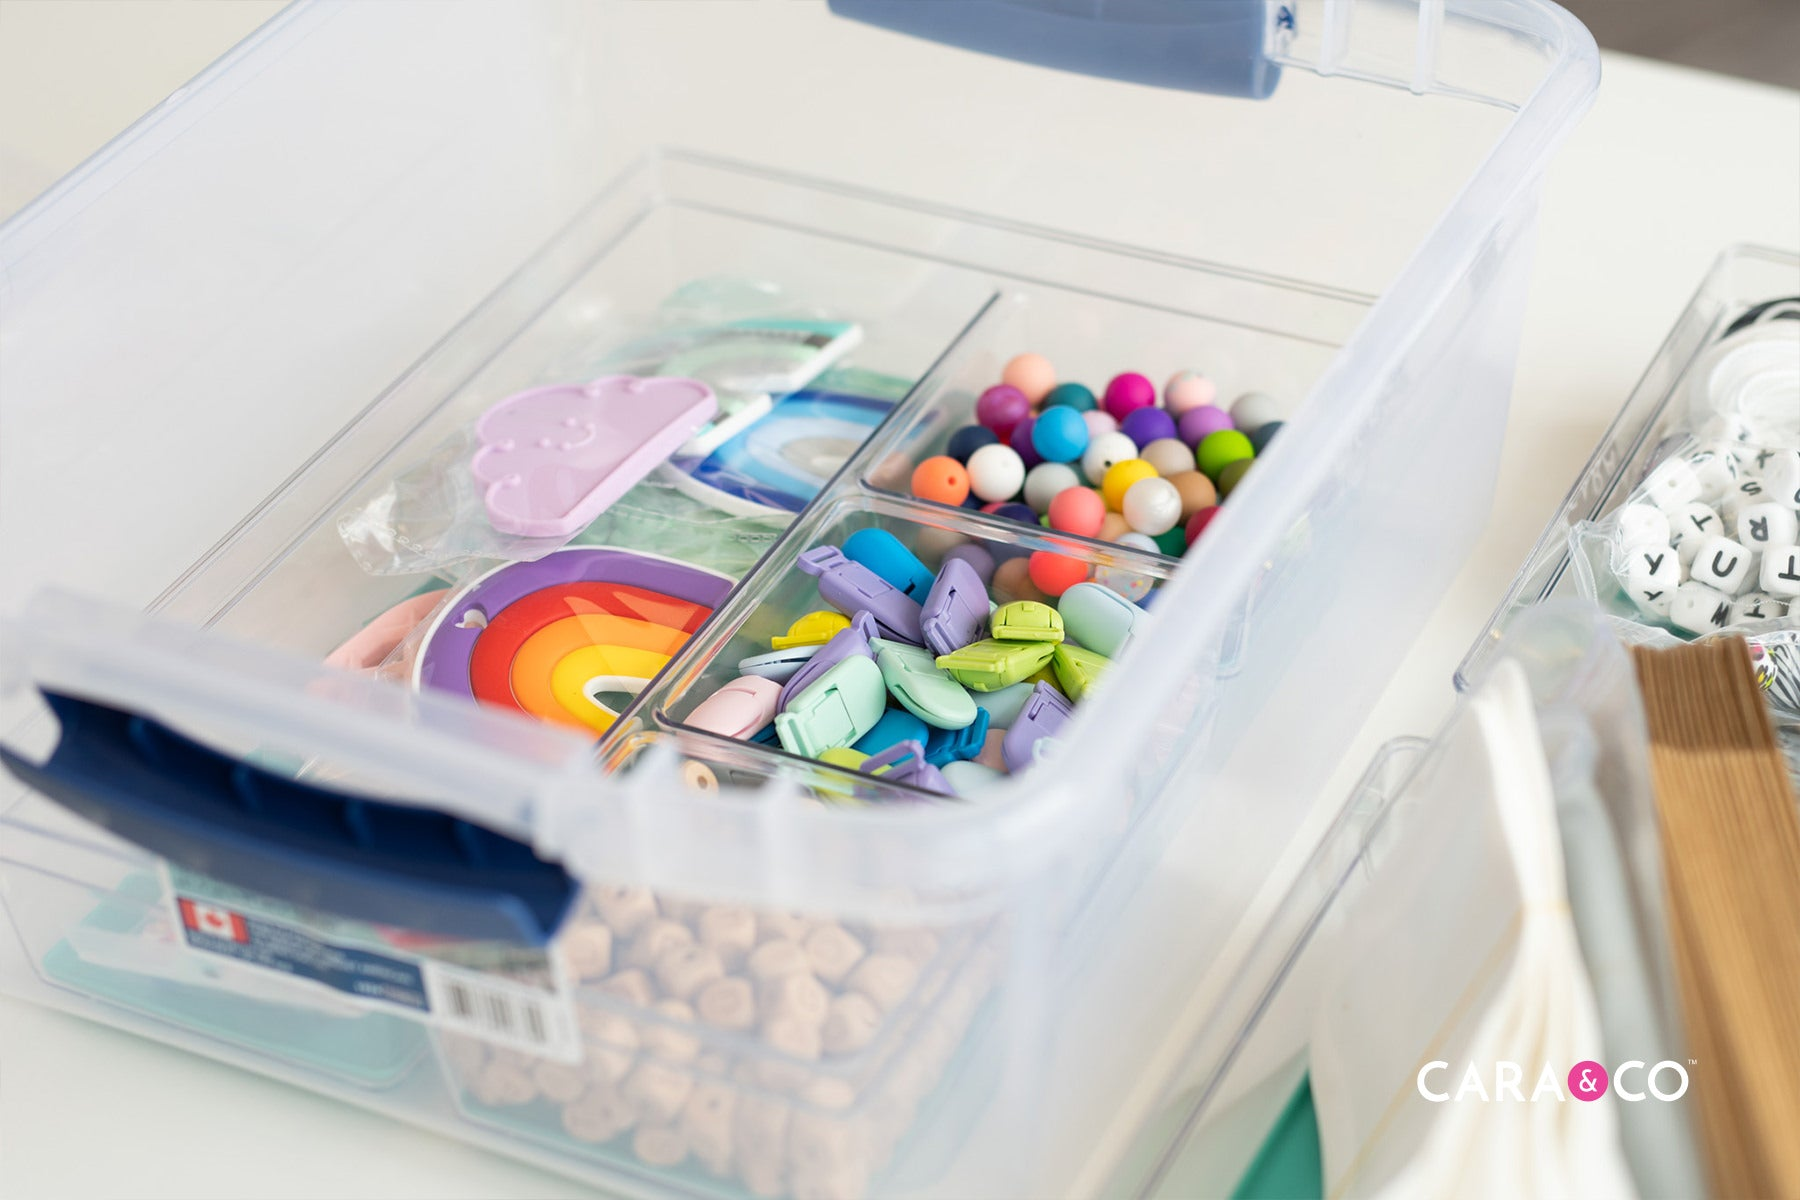 Storage and organization solutions for your handmade home business